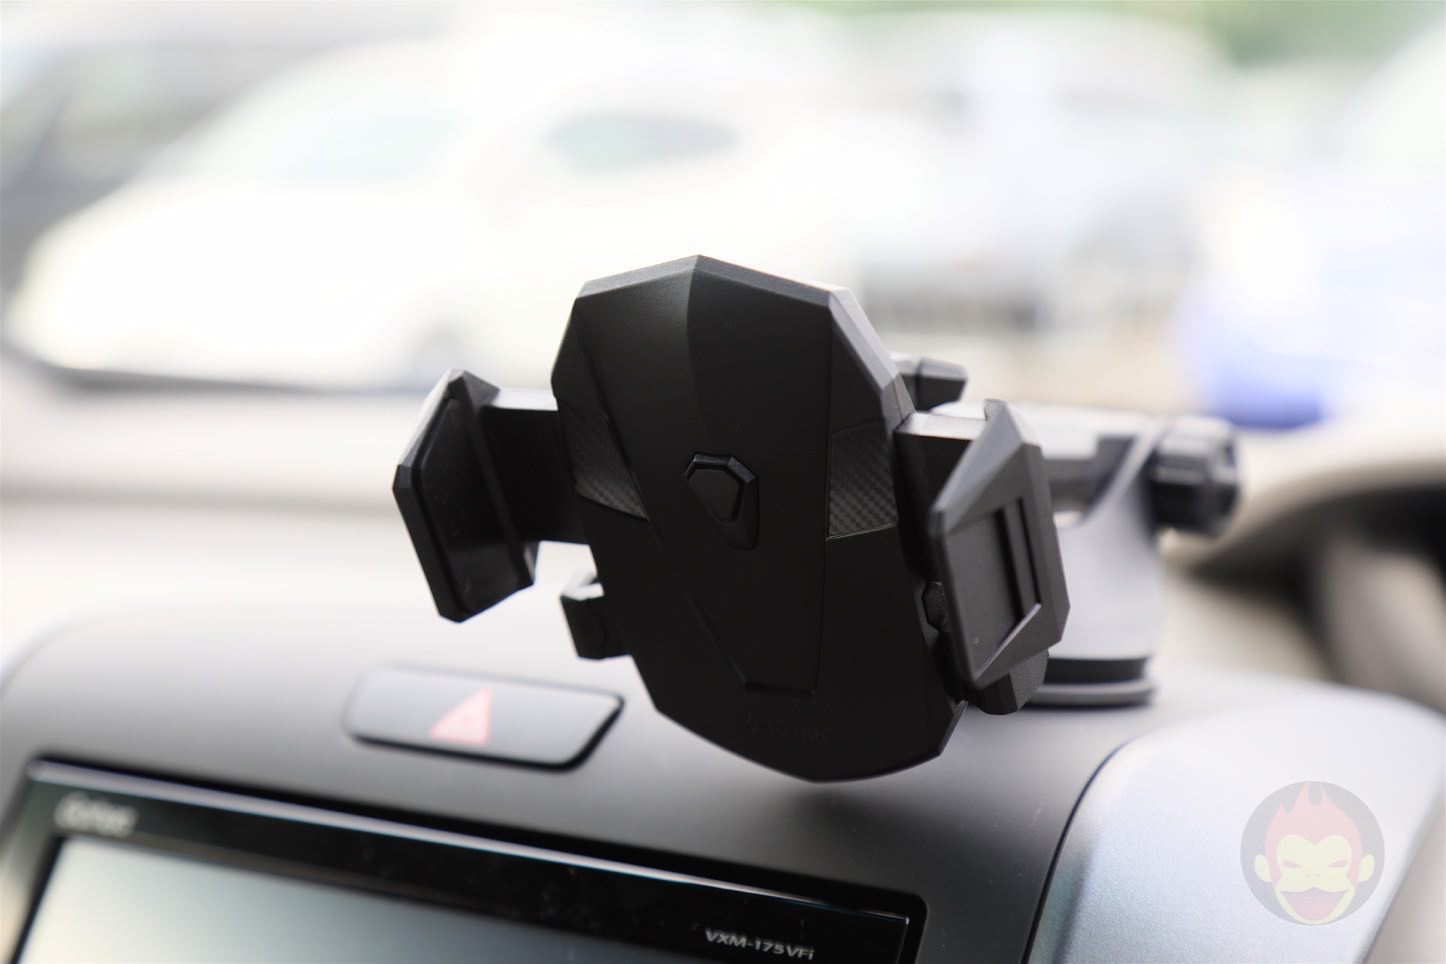 Spigen-AP12T-Car-Mount-17.jpg